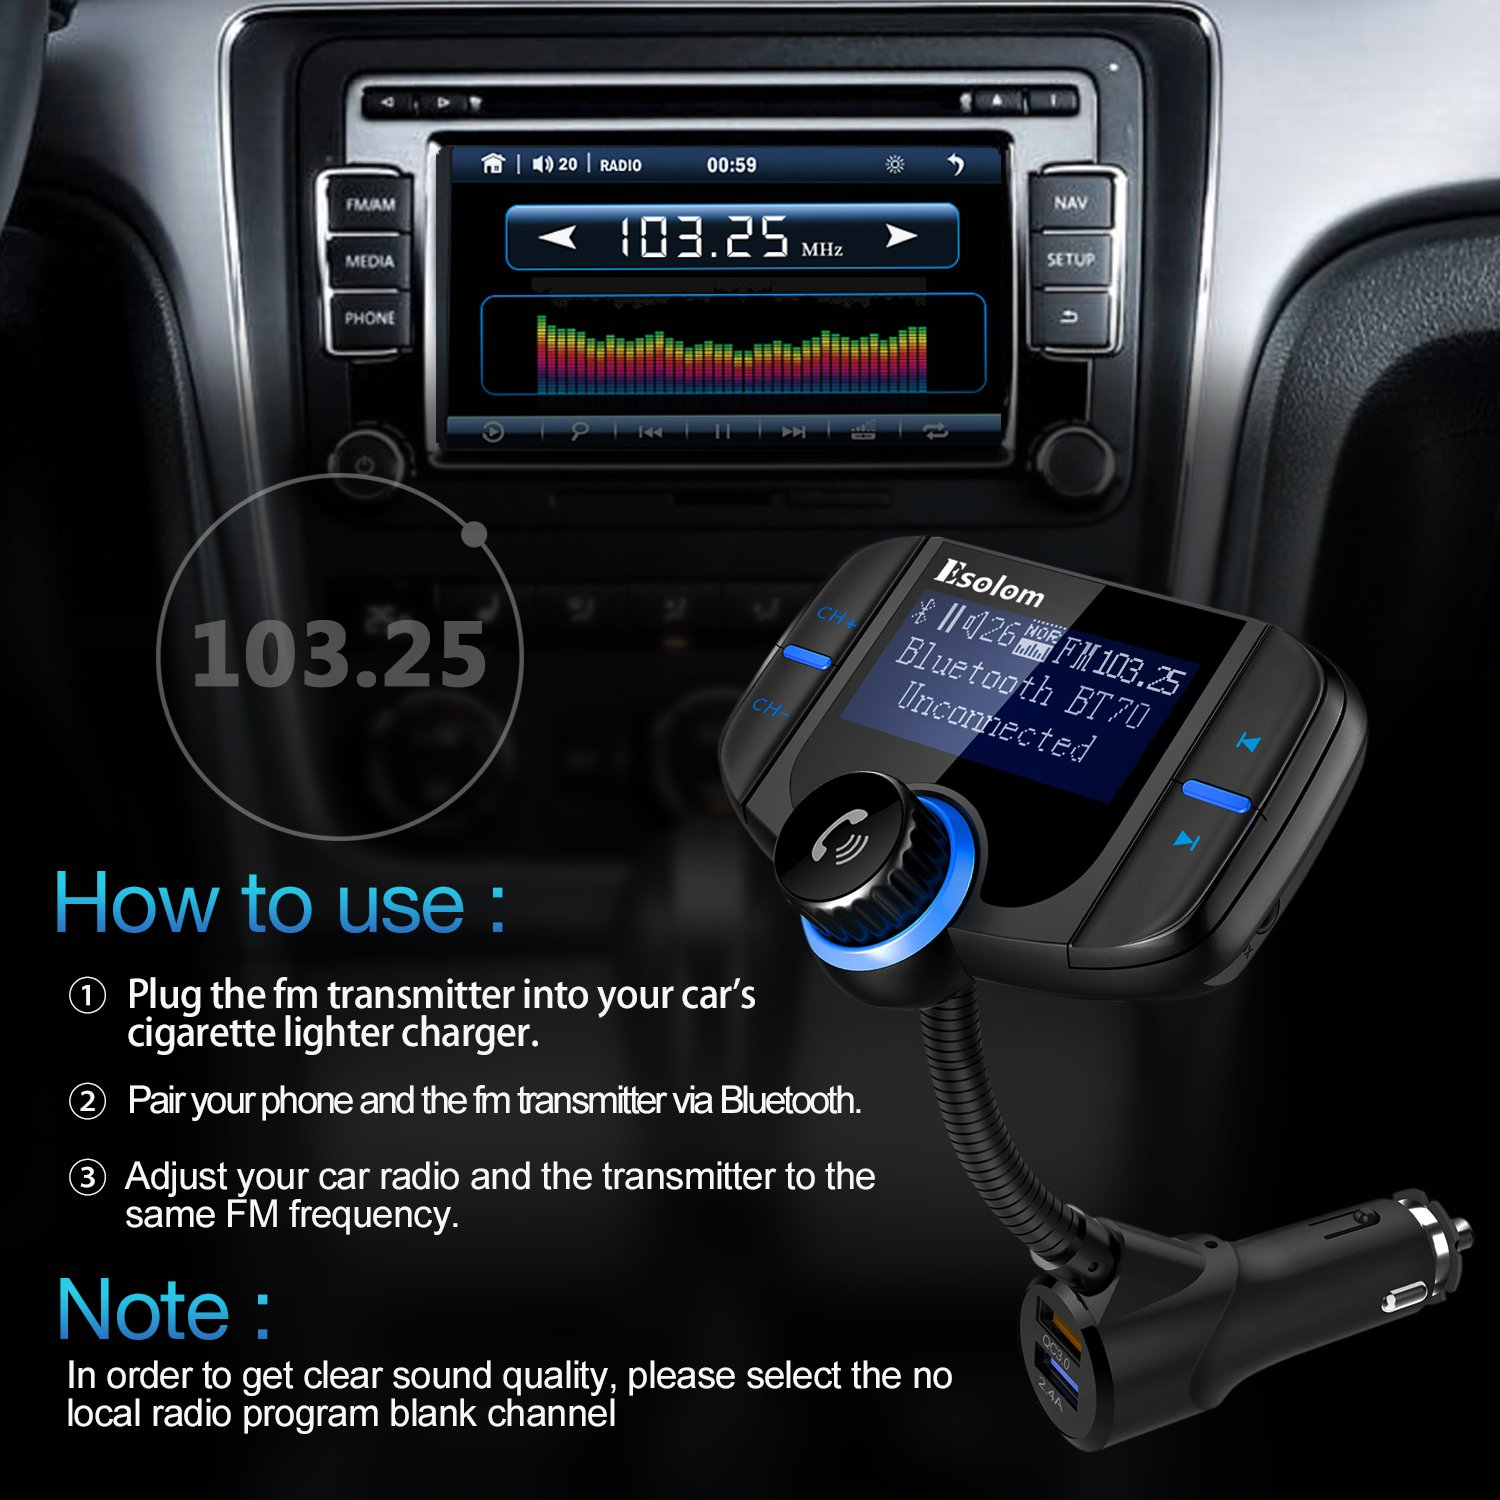 """Bluetooth FM Transmitter, ESOLOM Wireless Car Stereo Radio Adapter Receiver, Hands-free Calling Car Kit with 1.7"""" Display, QC3.0 & Smart 2.4A Dual USB Ports, Support TF Card, AUX Input/Output by ESOLOM (Image #6)"""